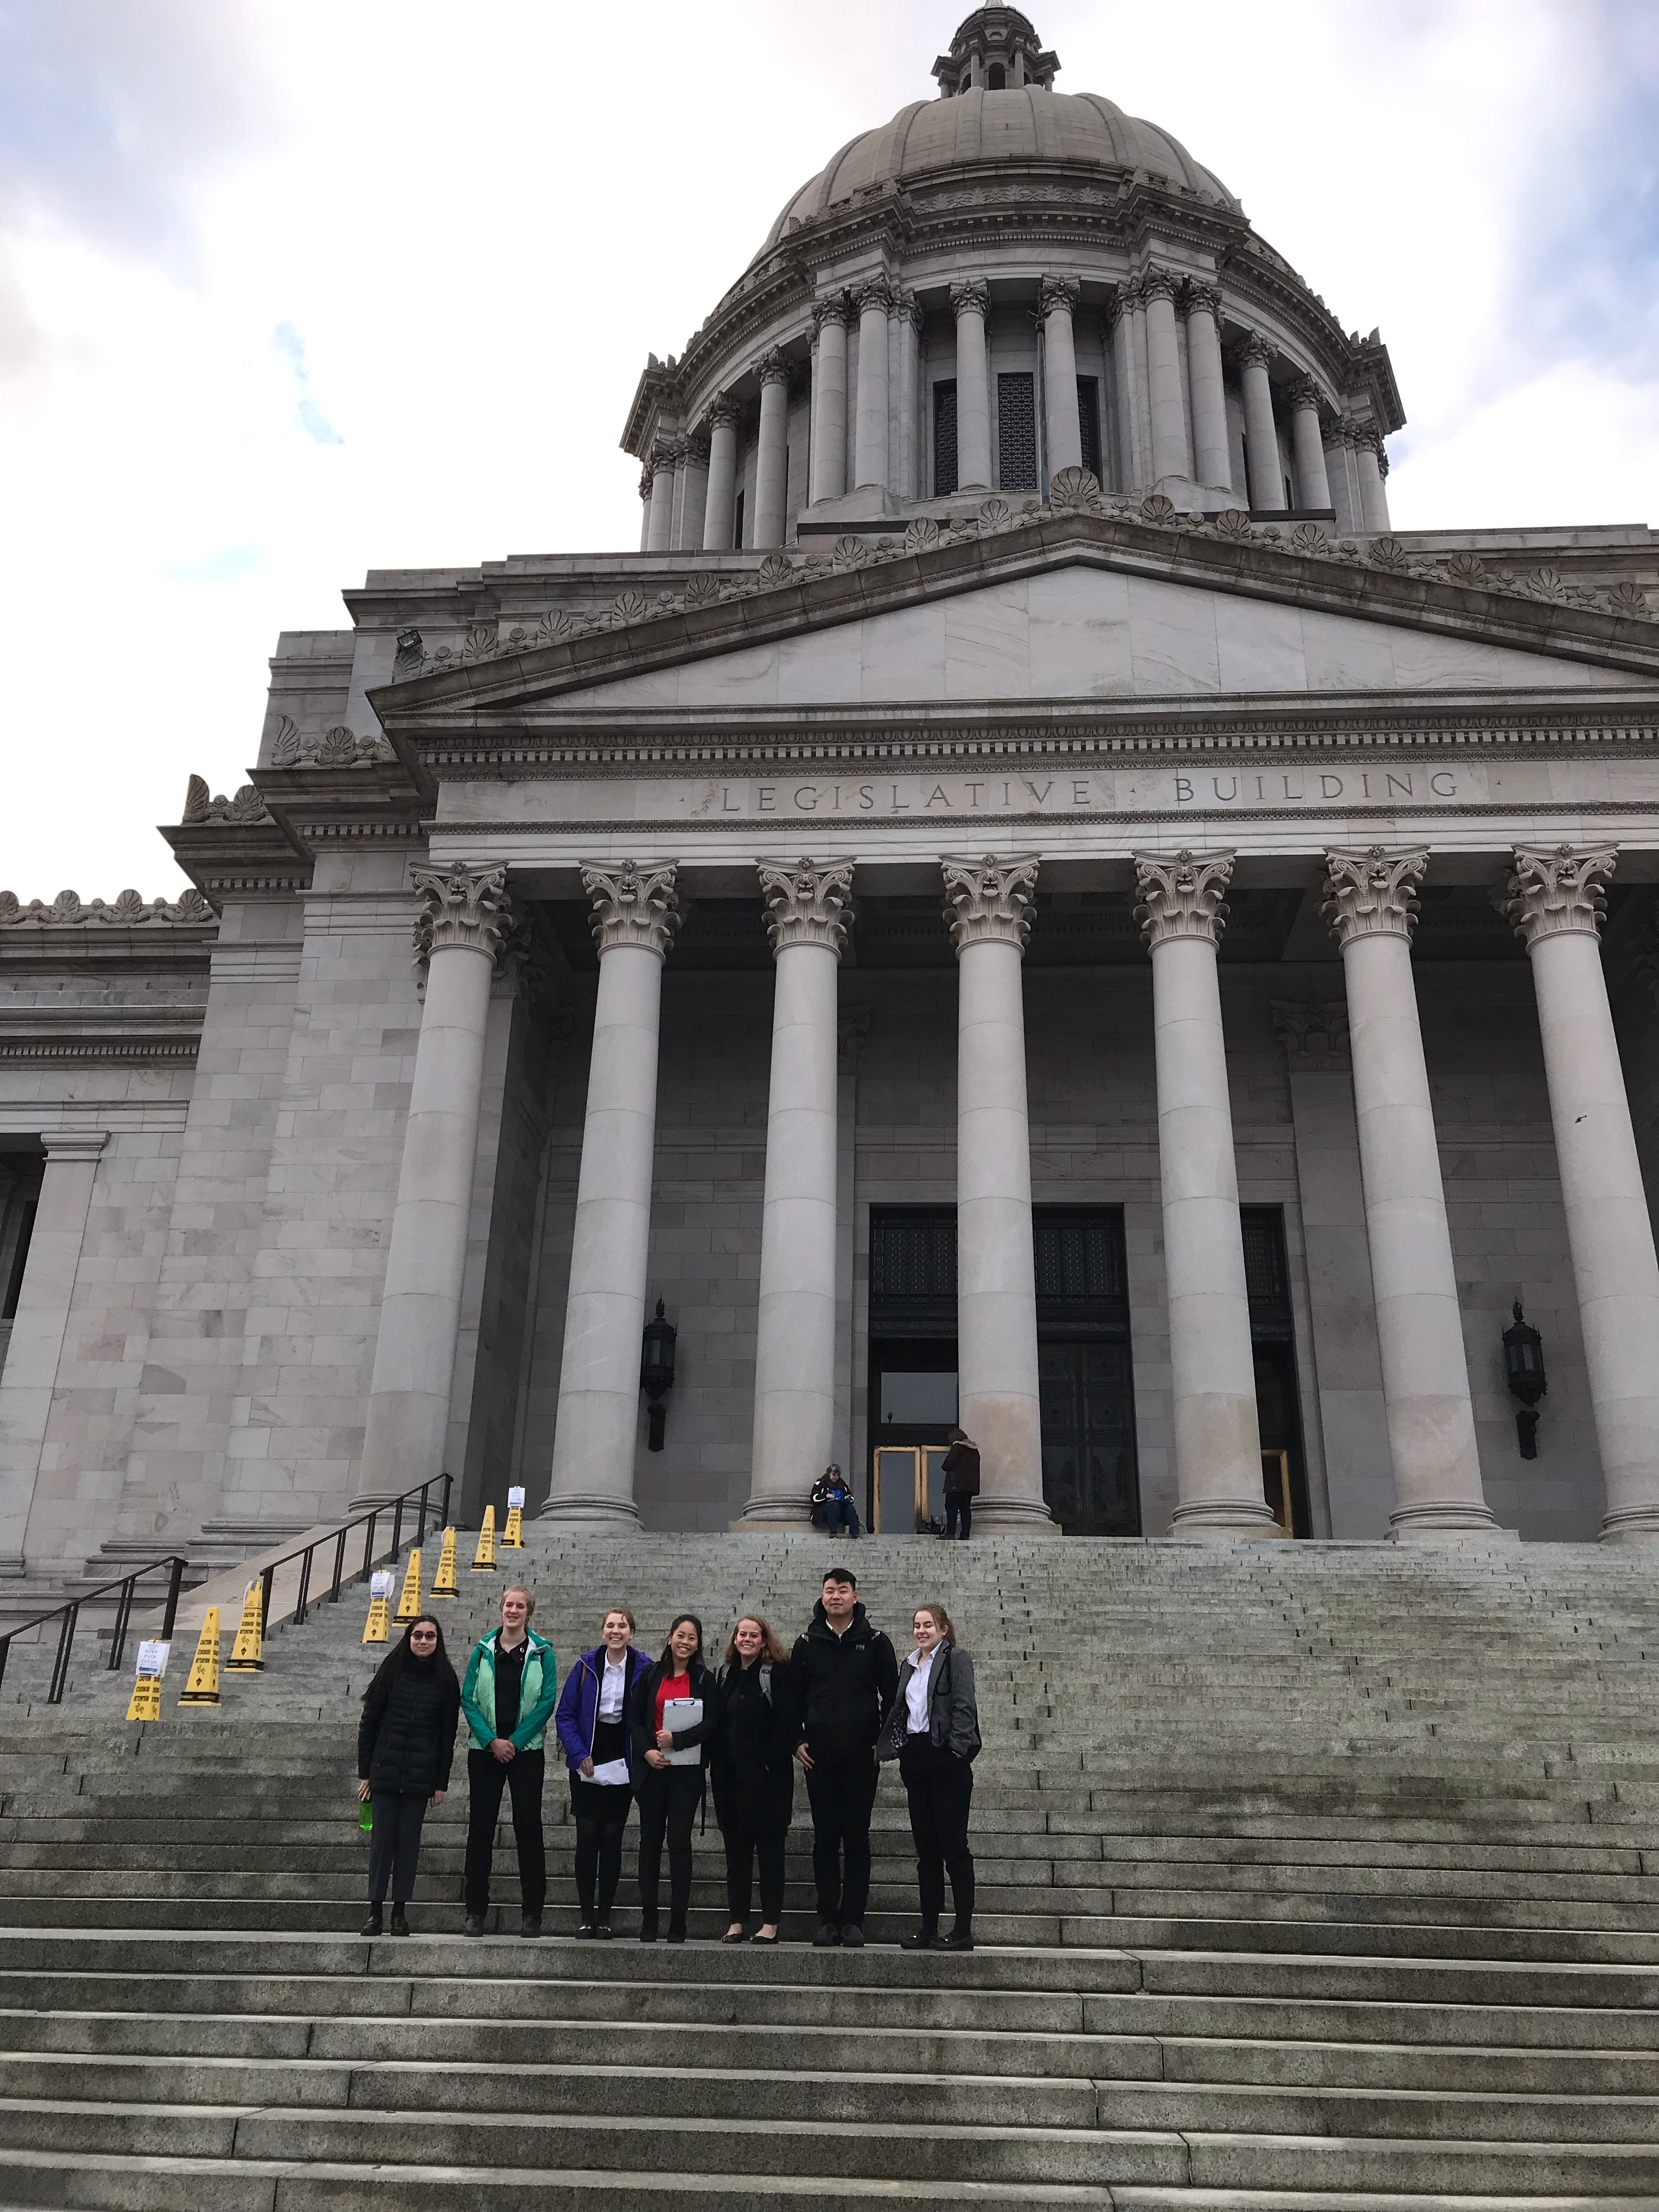 Seven youth volunteers from the Seattle Aquarium's Youth Ocean Advocates program joined high school volunteers from the Woodland Park Zoo and Point Defiance Zoo and Aquarium to talk with legislators about taking action to reduce plastic pollution.